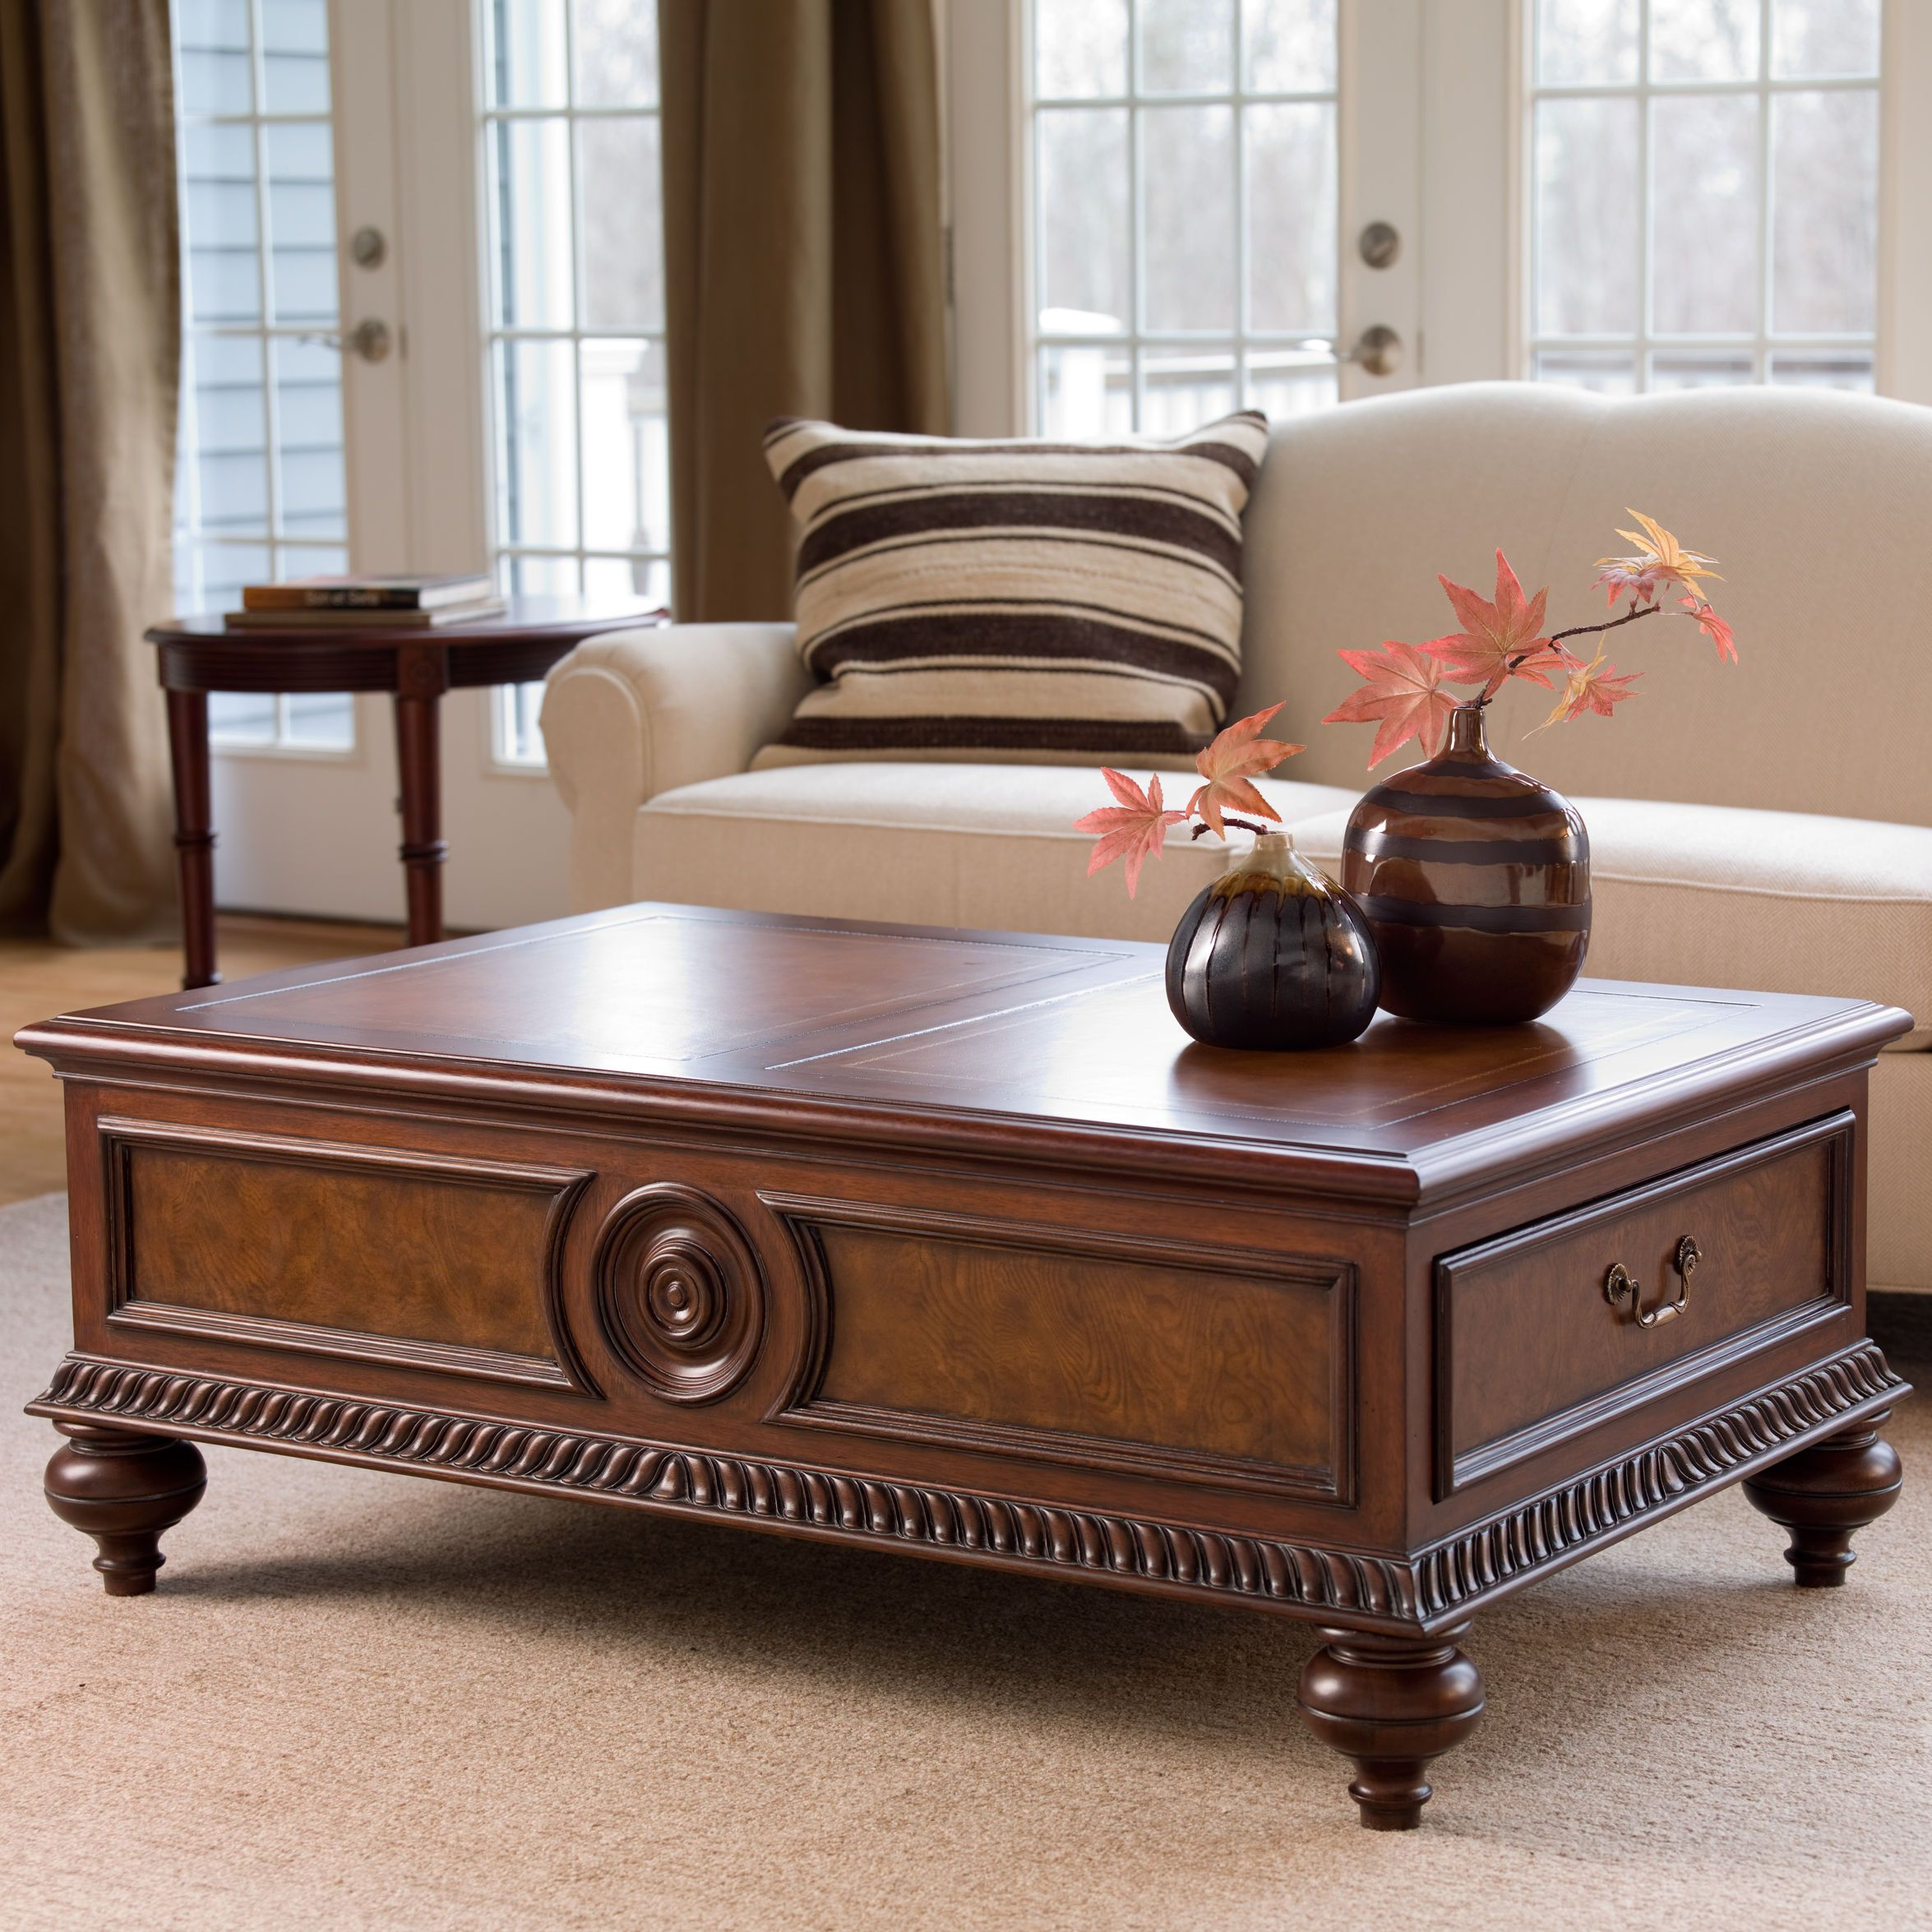 Morley Coffee Table Ethan Allen US